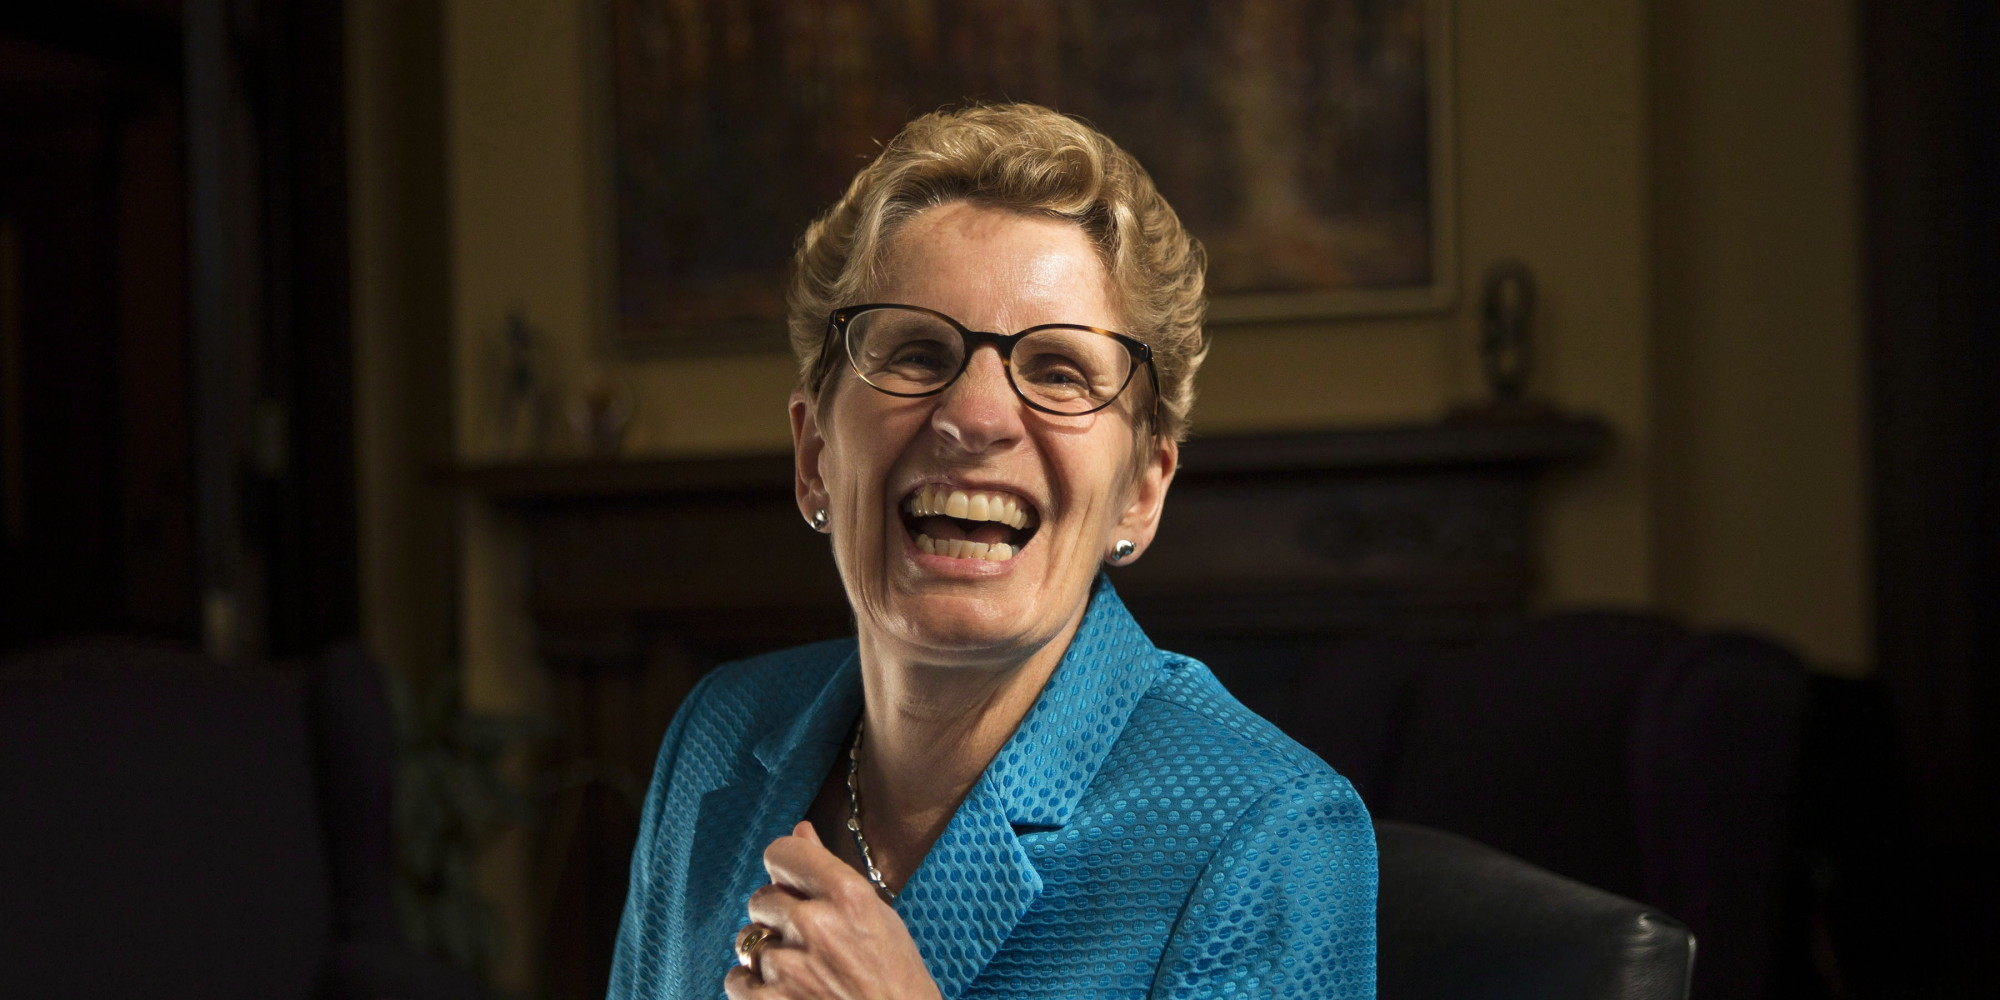 Kathleen Wynne, Politician (25th Premier of Ontario and Leader of the Ontario Liberal Party)